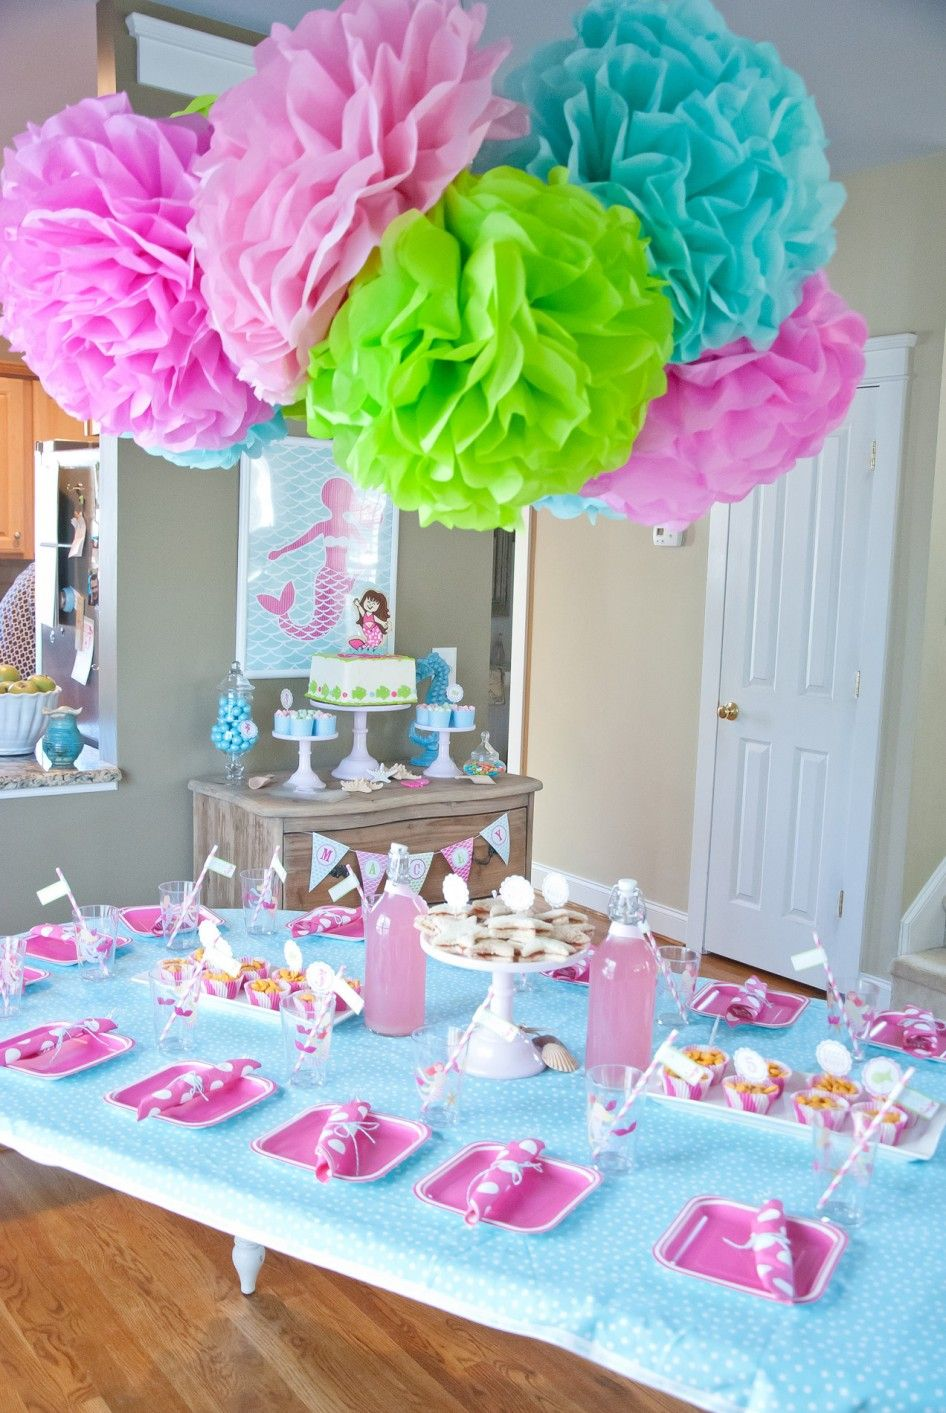 Amusing Birthday Party Table Decoration Ideas With Birthday Party Table Decoration Ideas For Adults Excellent